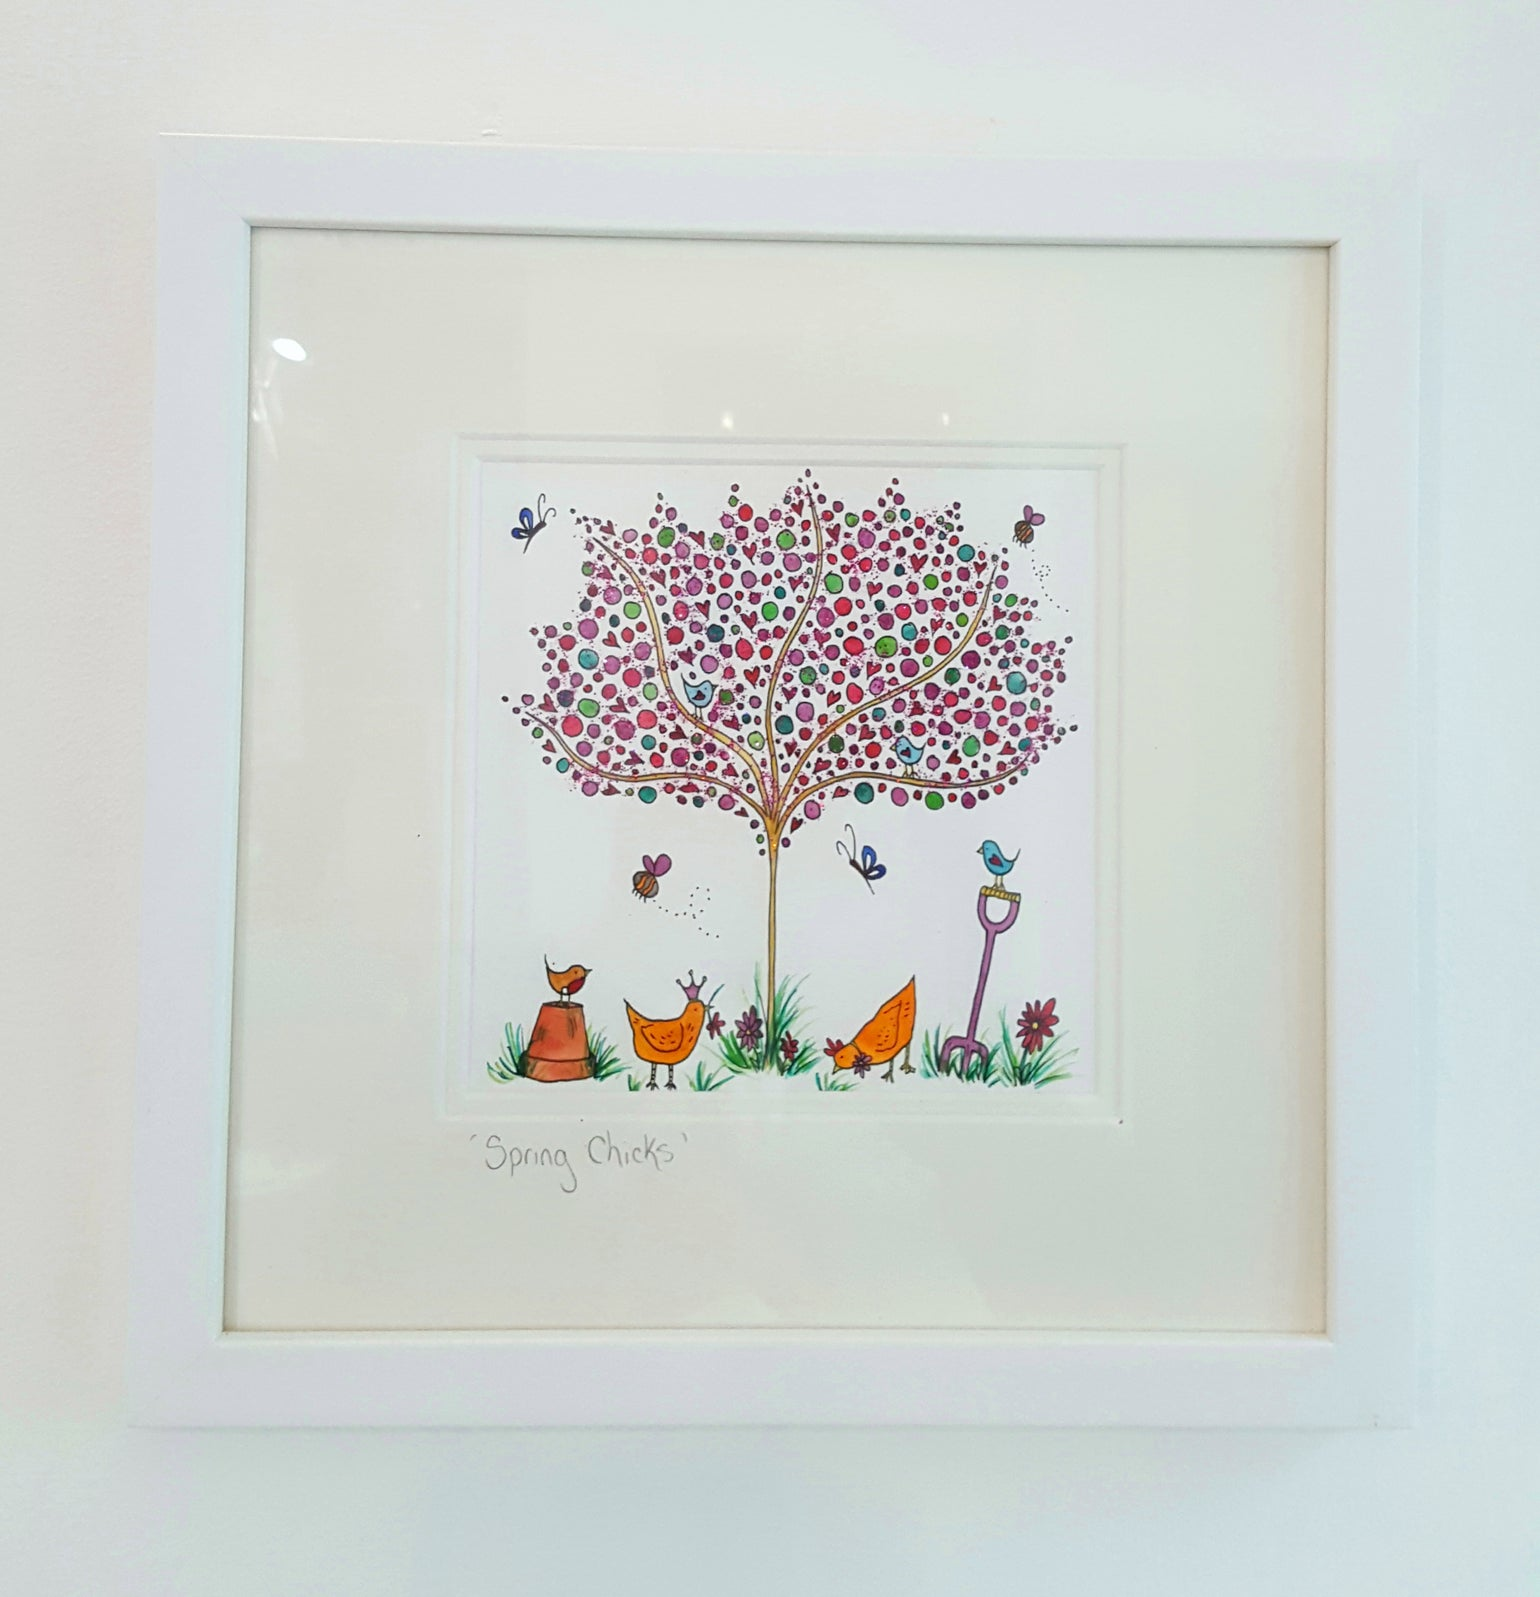 Image of 'Spring Chicks' Original Framed Watercolour